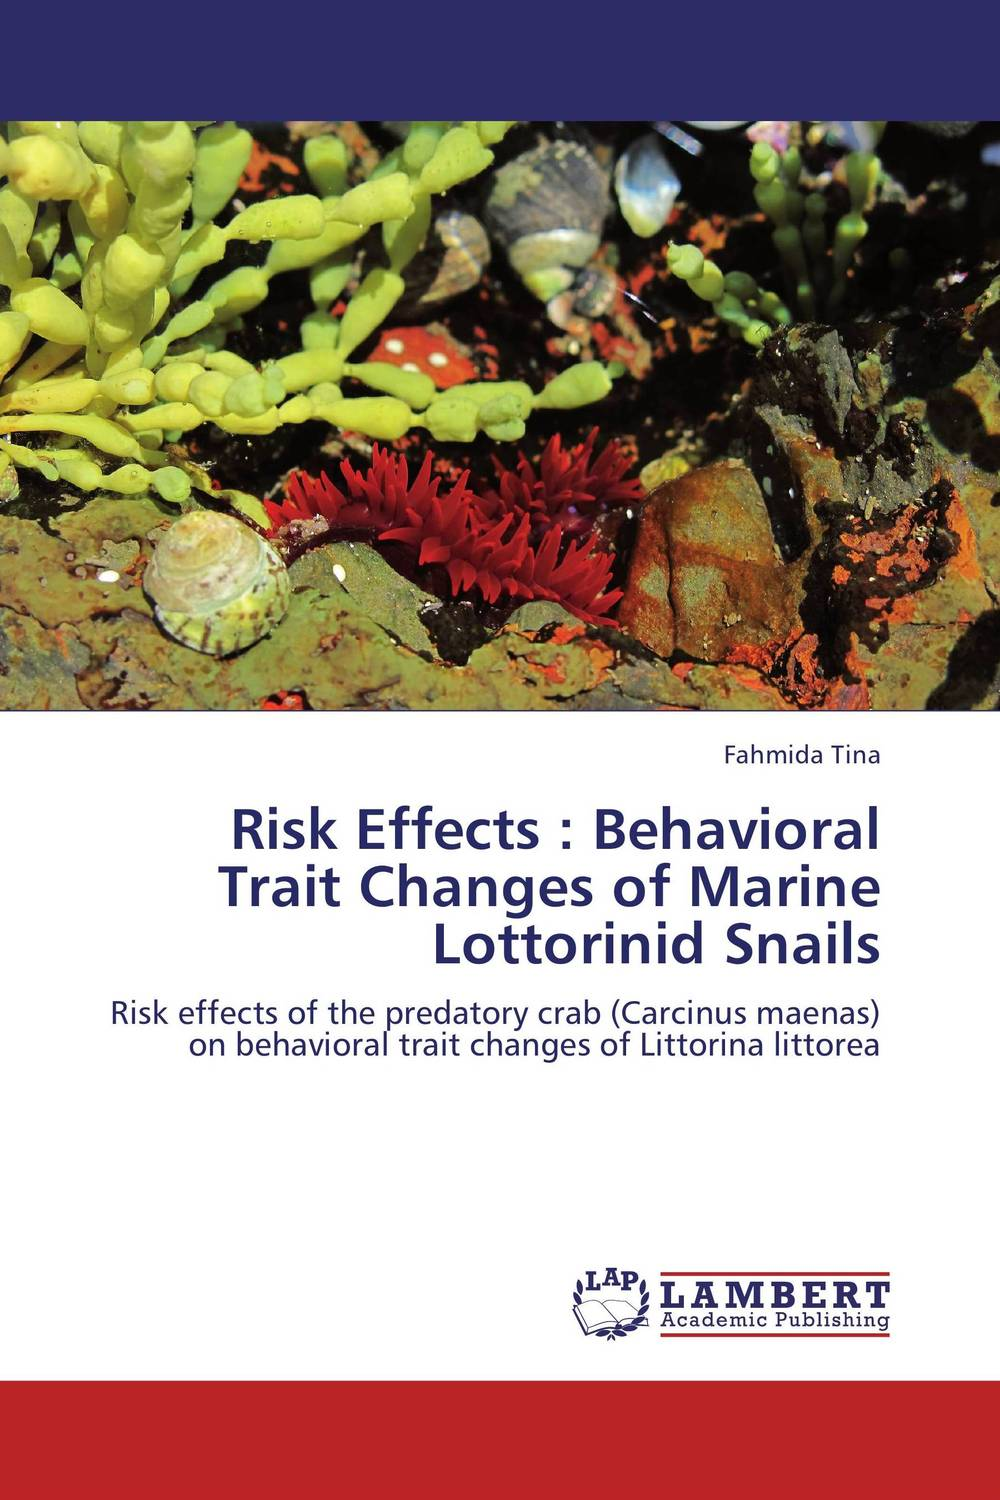 Risk Effects : Behavioral Trait Changes of Marine Lottorinid Snails